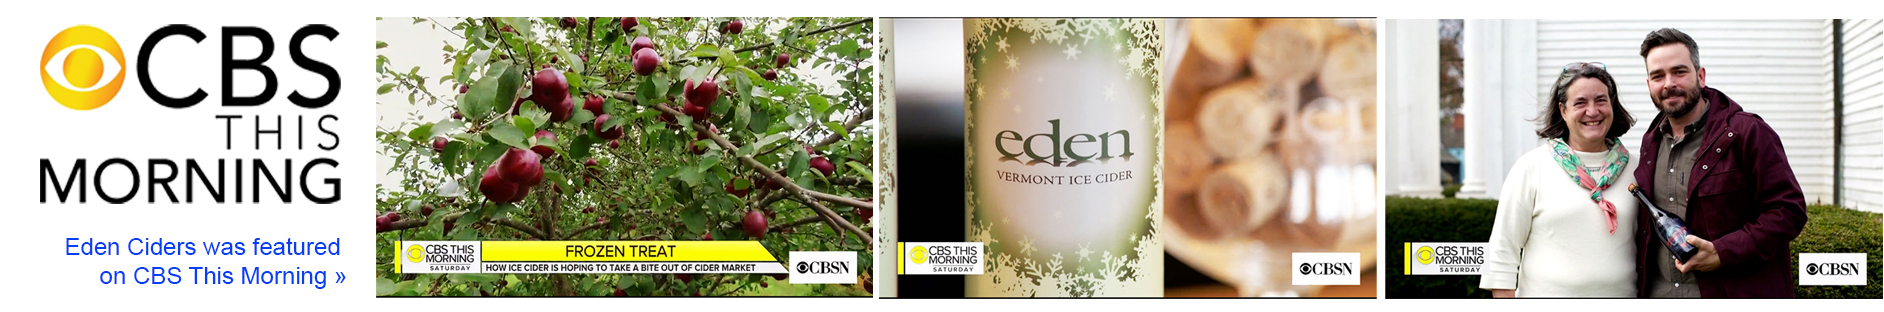 Eden Ciders on CBS This Morning